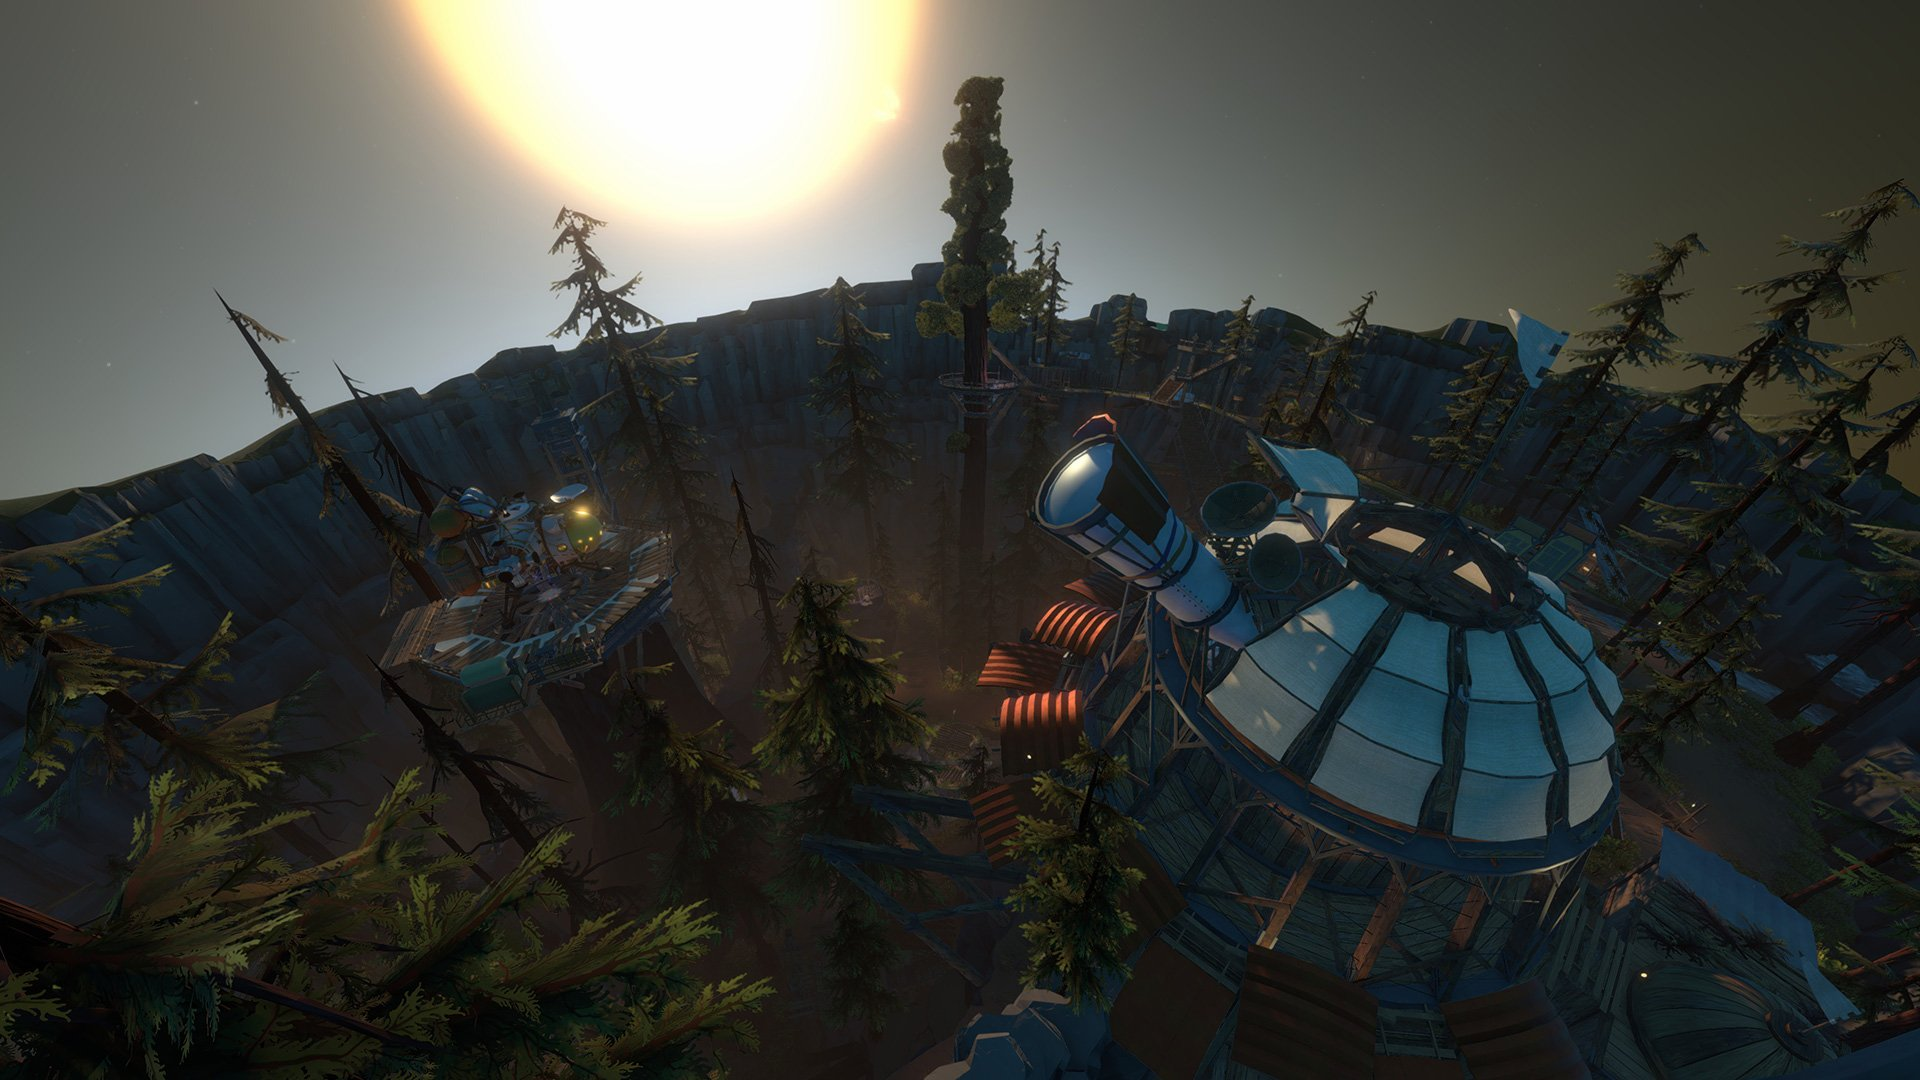 Jot down June 18 if you're waiting for Outer Wilds on Steam screenshot